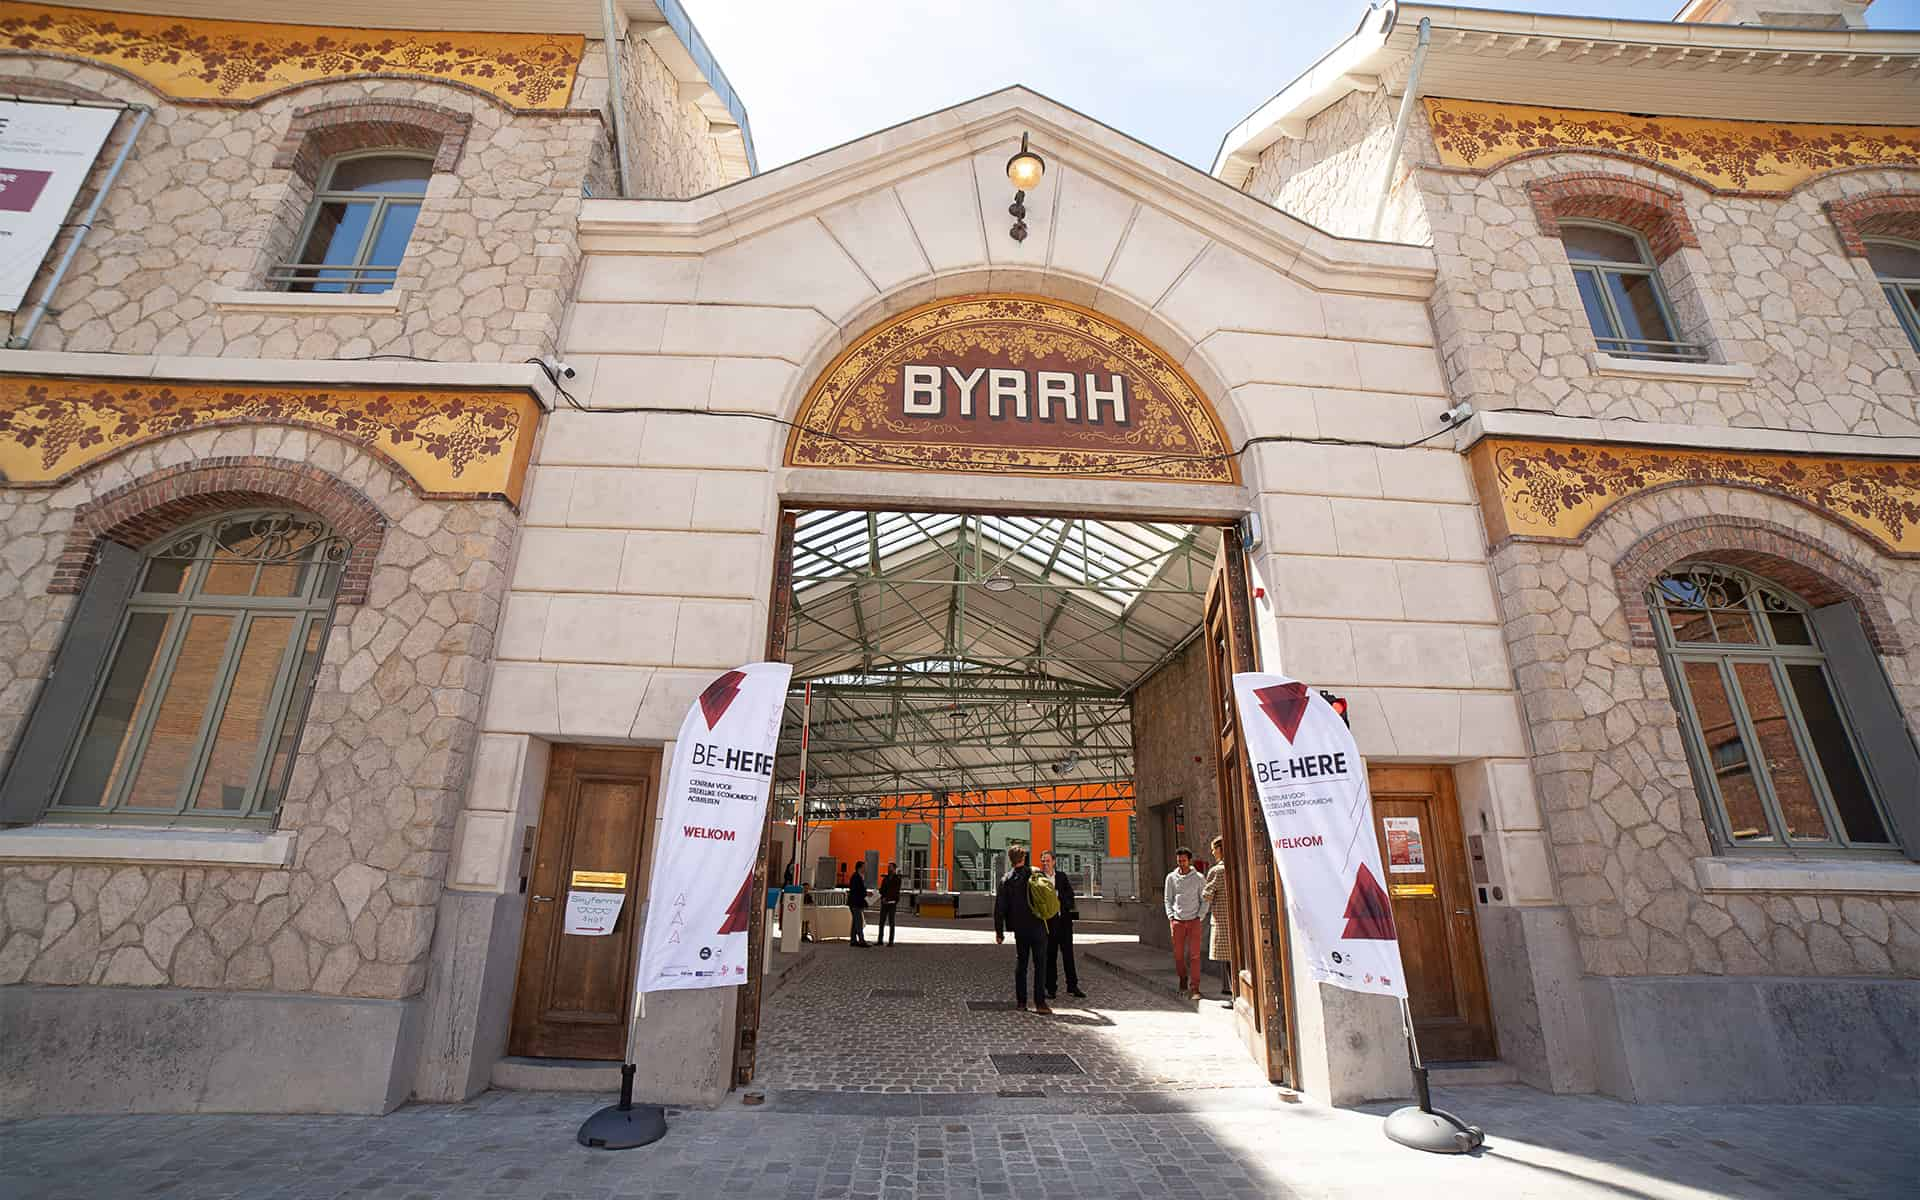 be-here-byrrh-entrance